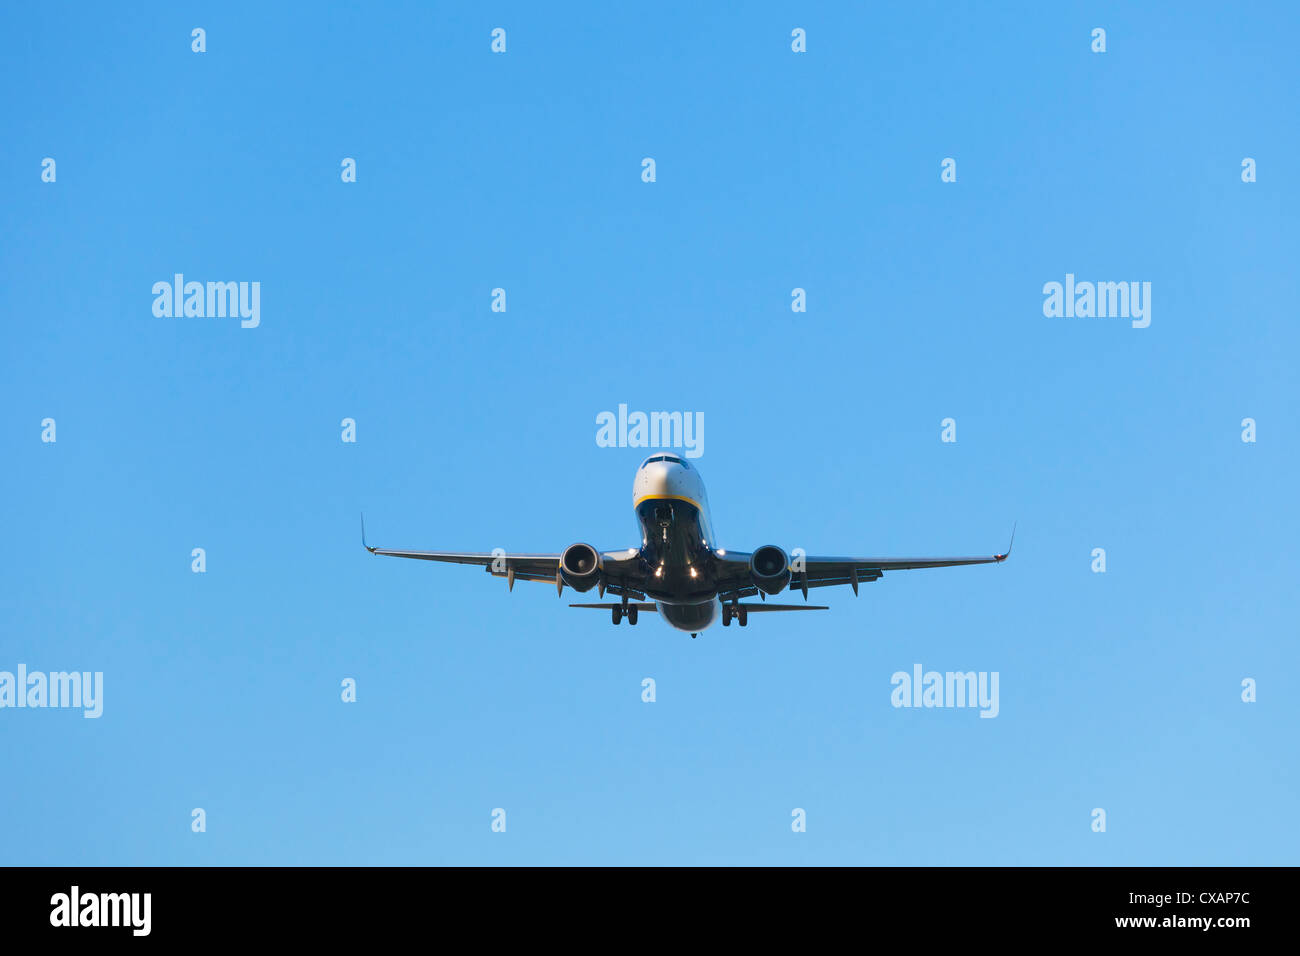 Ryanair Aircraft Boeing 737 on final approach, England - Stock Image